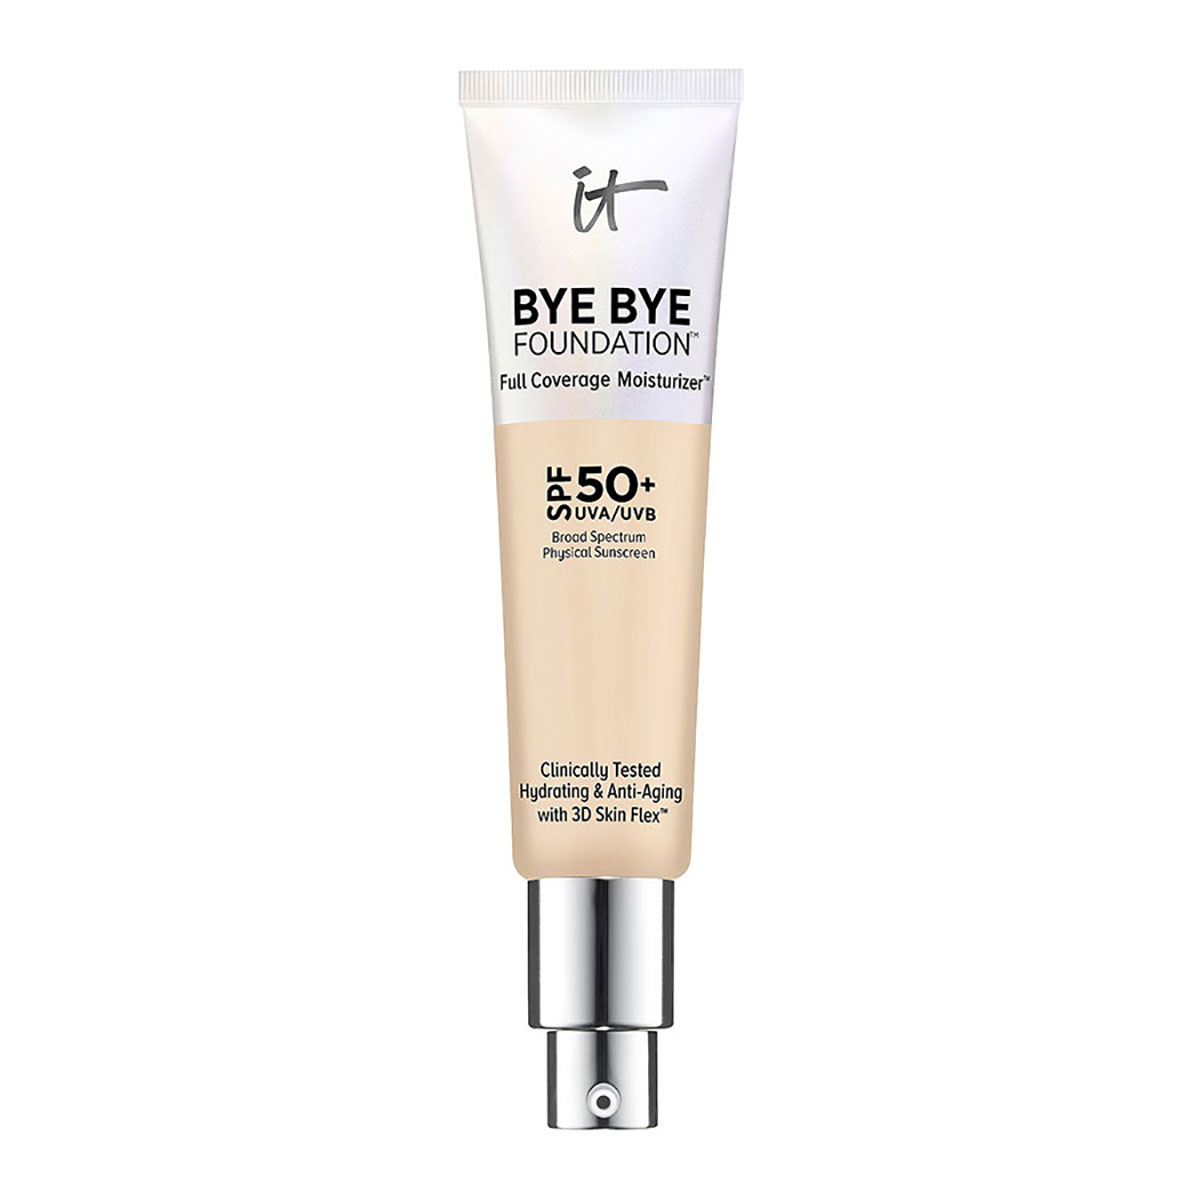 It Cosmetics Bye Bye Foundation Full Coverage Moisturizer with SPF 50+